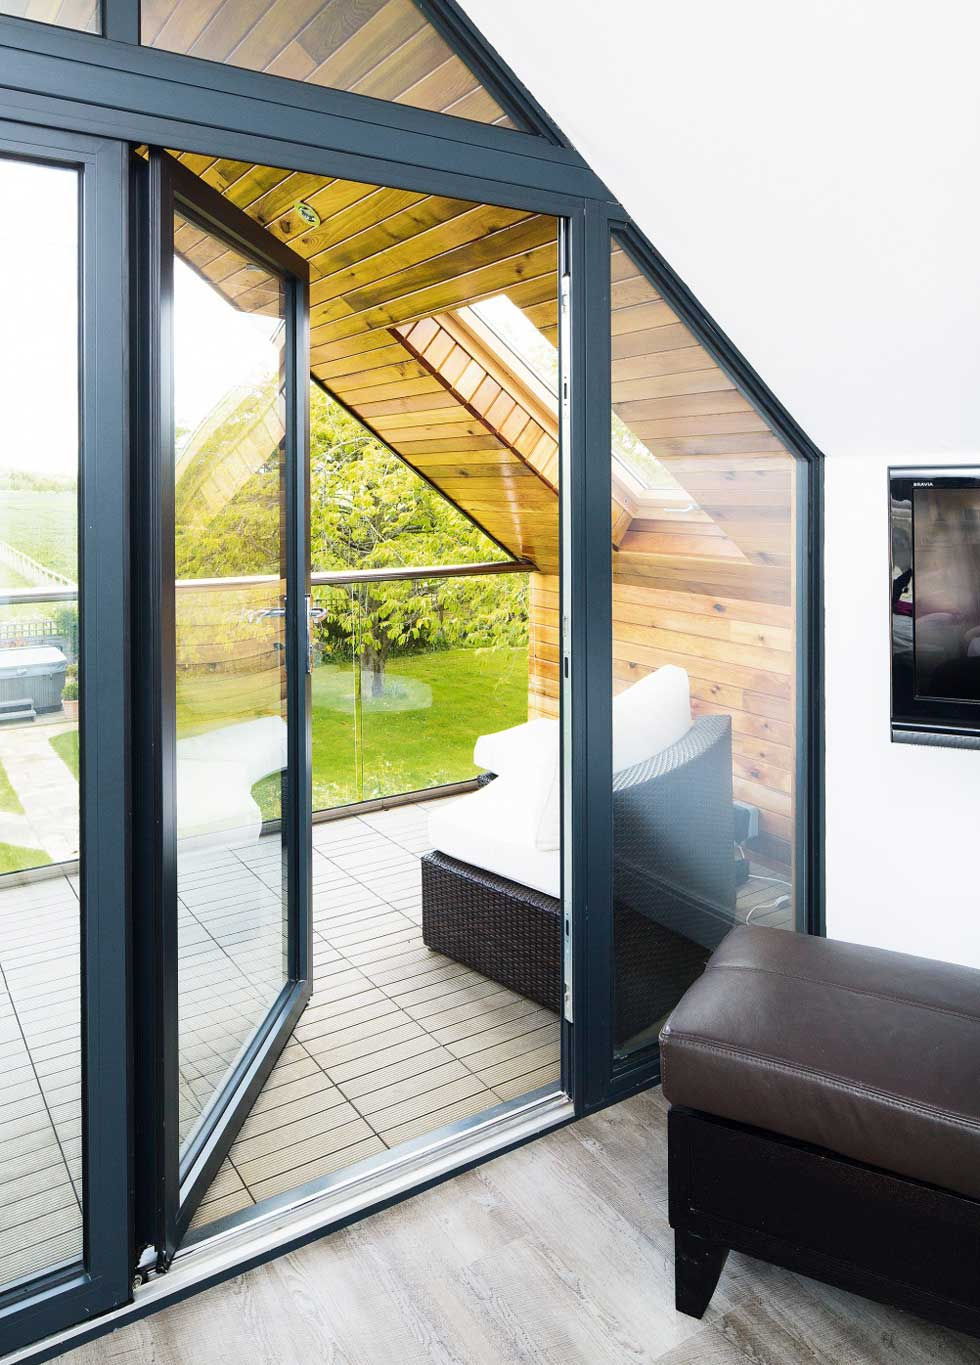 A glass door leads out onto the decked terrace